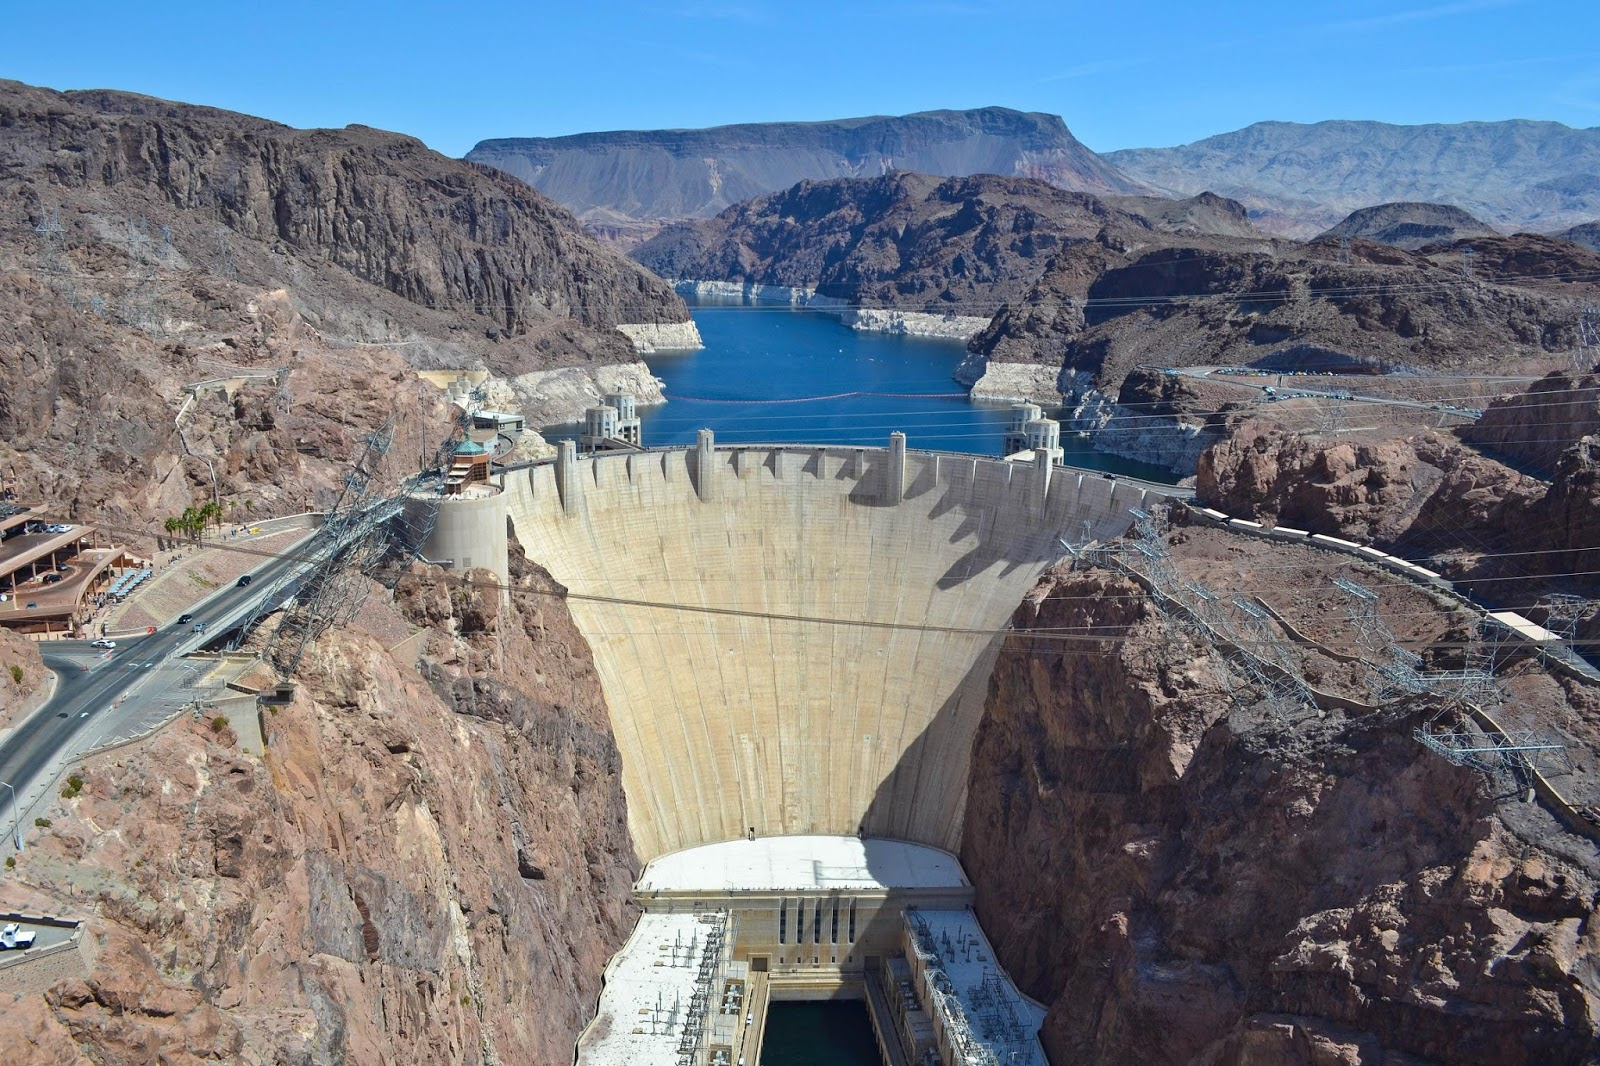 World Wondering: Preview: The Hoover Dam